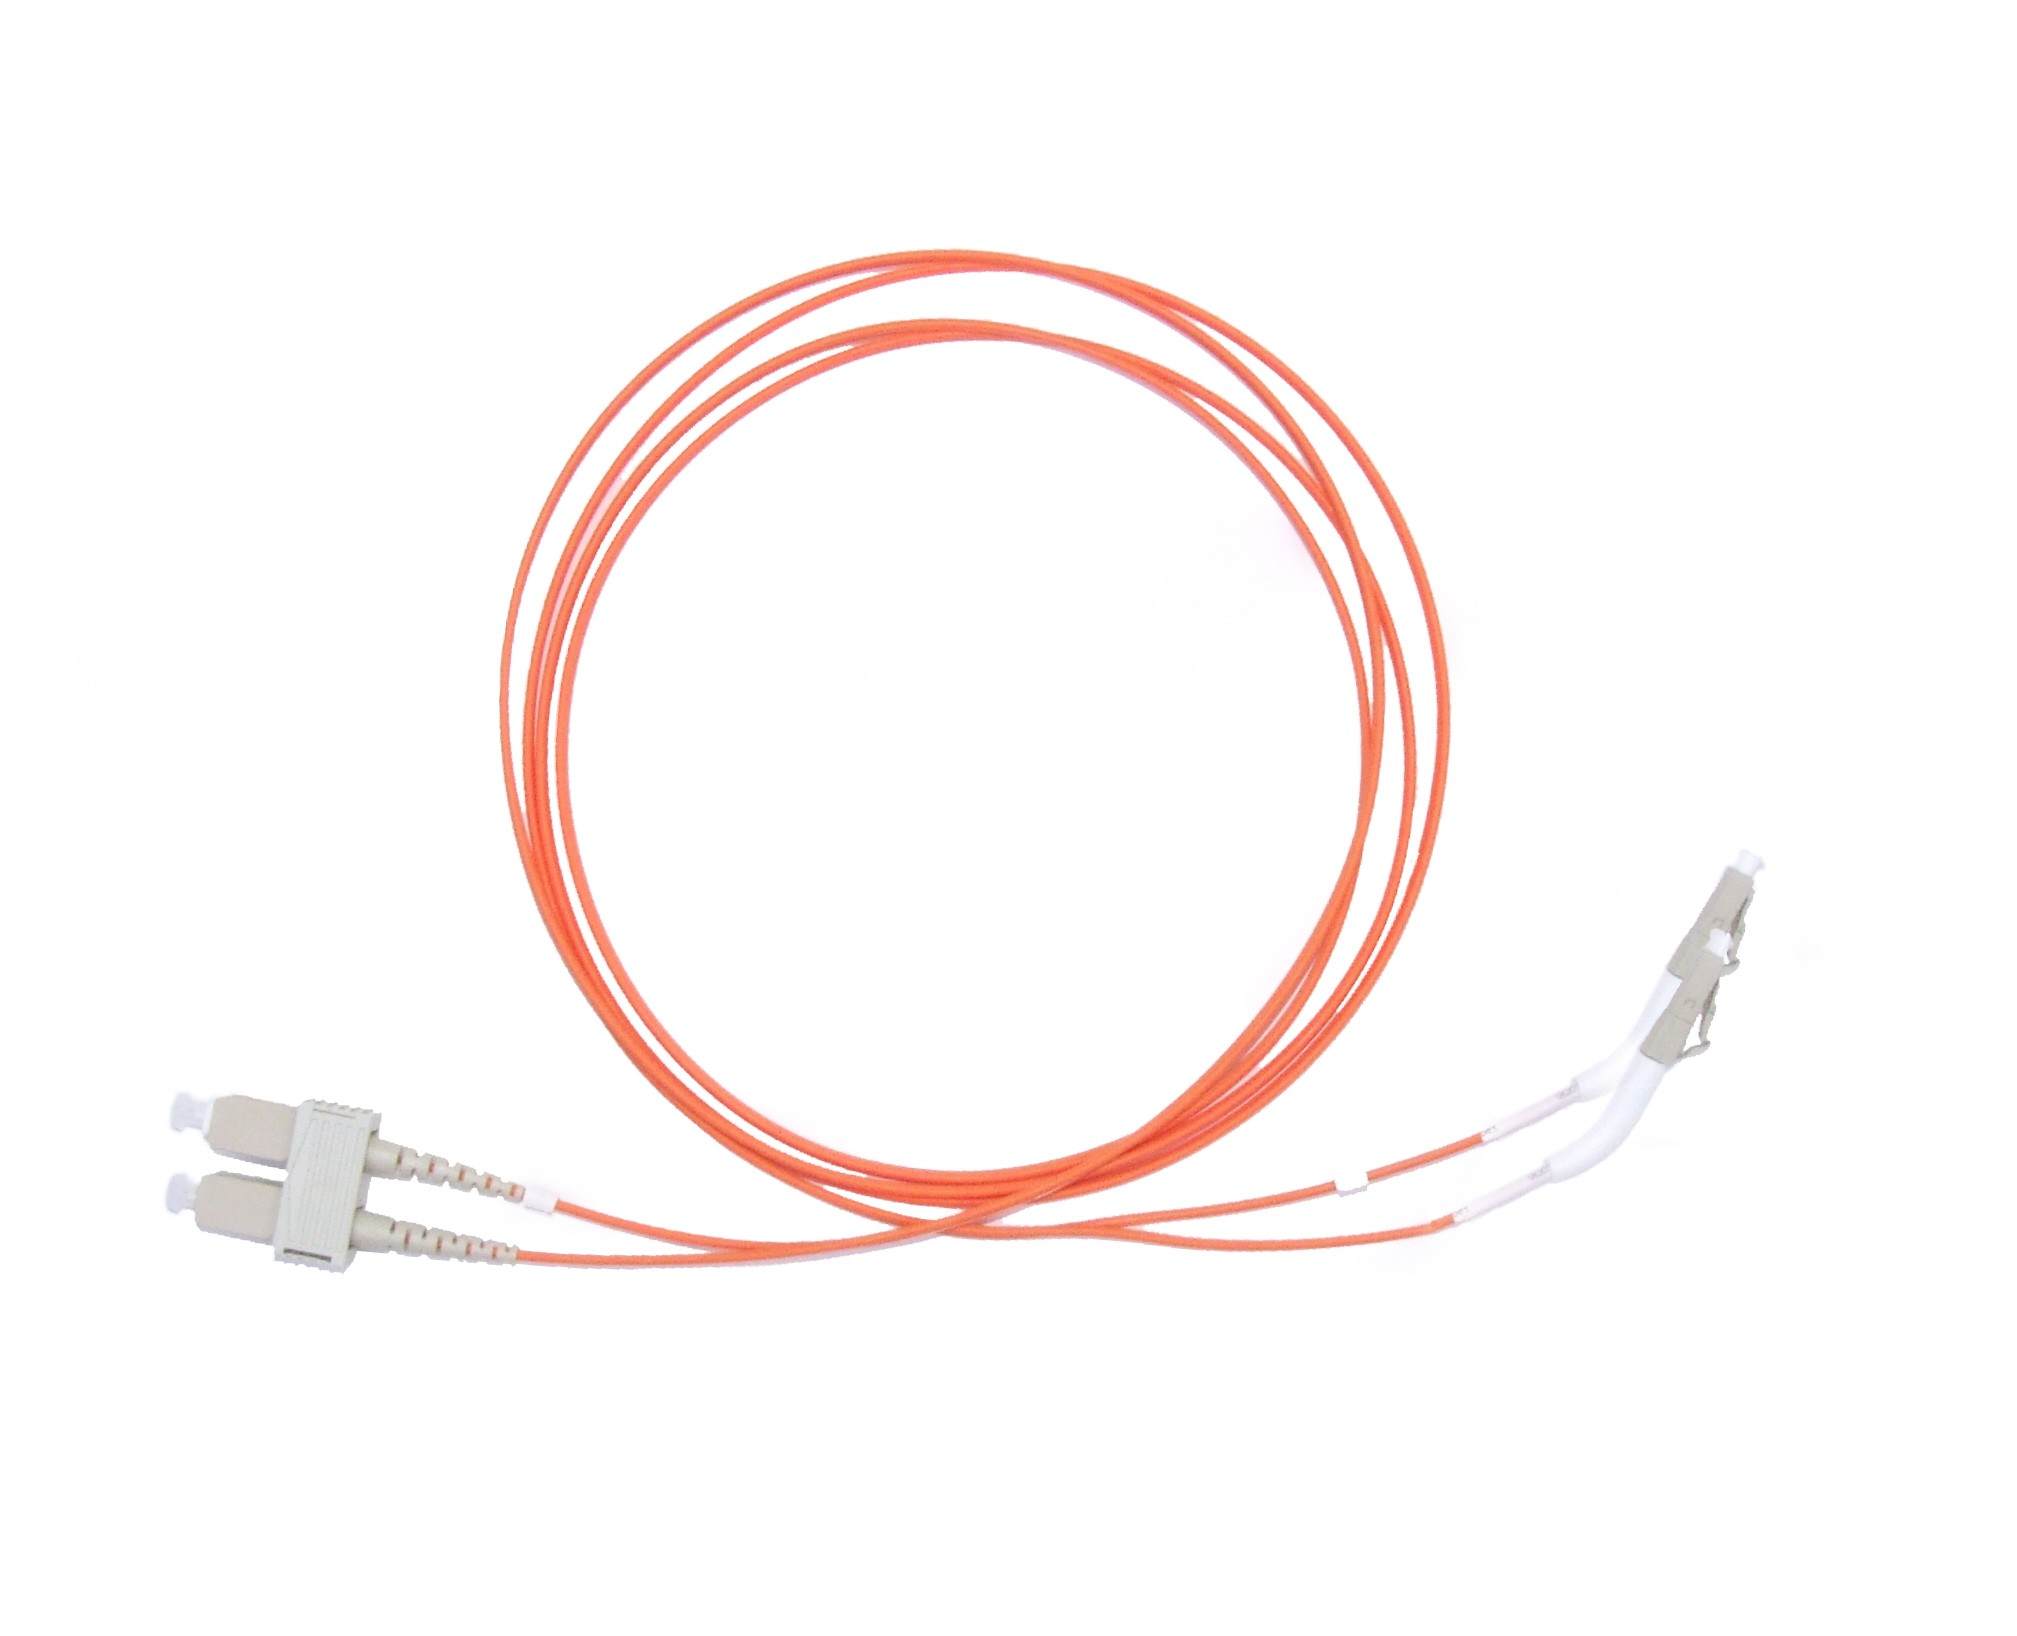 LC 45 deg boot - SC Multimode fibre patch cable 62.5/125 OM1 Duplex 7m